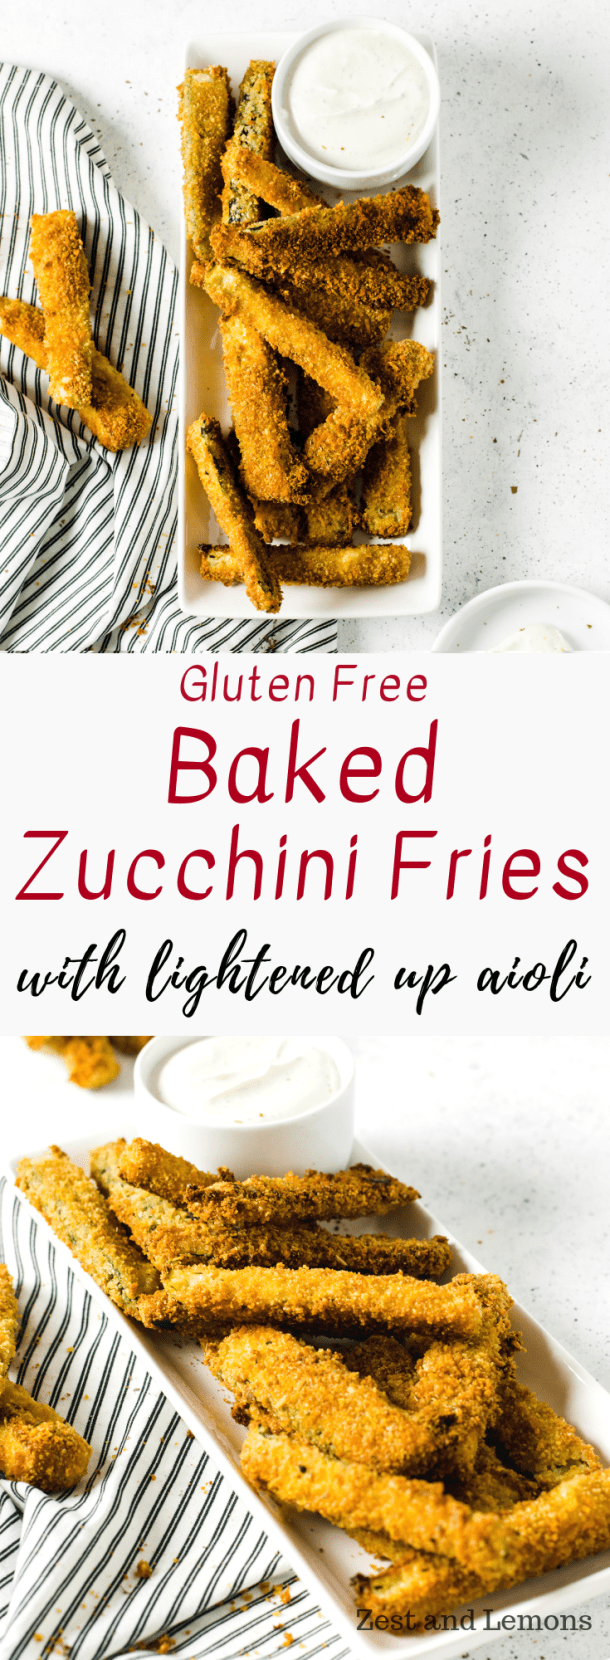 Crispy gluten free baked zucchini fries, served with a lightened up aioli. Perfect for snacking or game-day appetizers - Zest and Lemons #glutenfree #zucchinifries #glutenfreesnacks